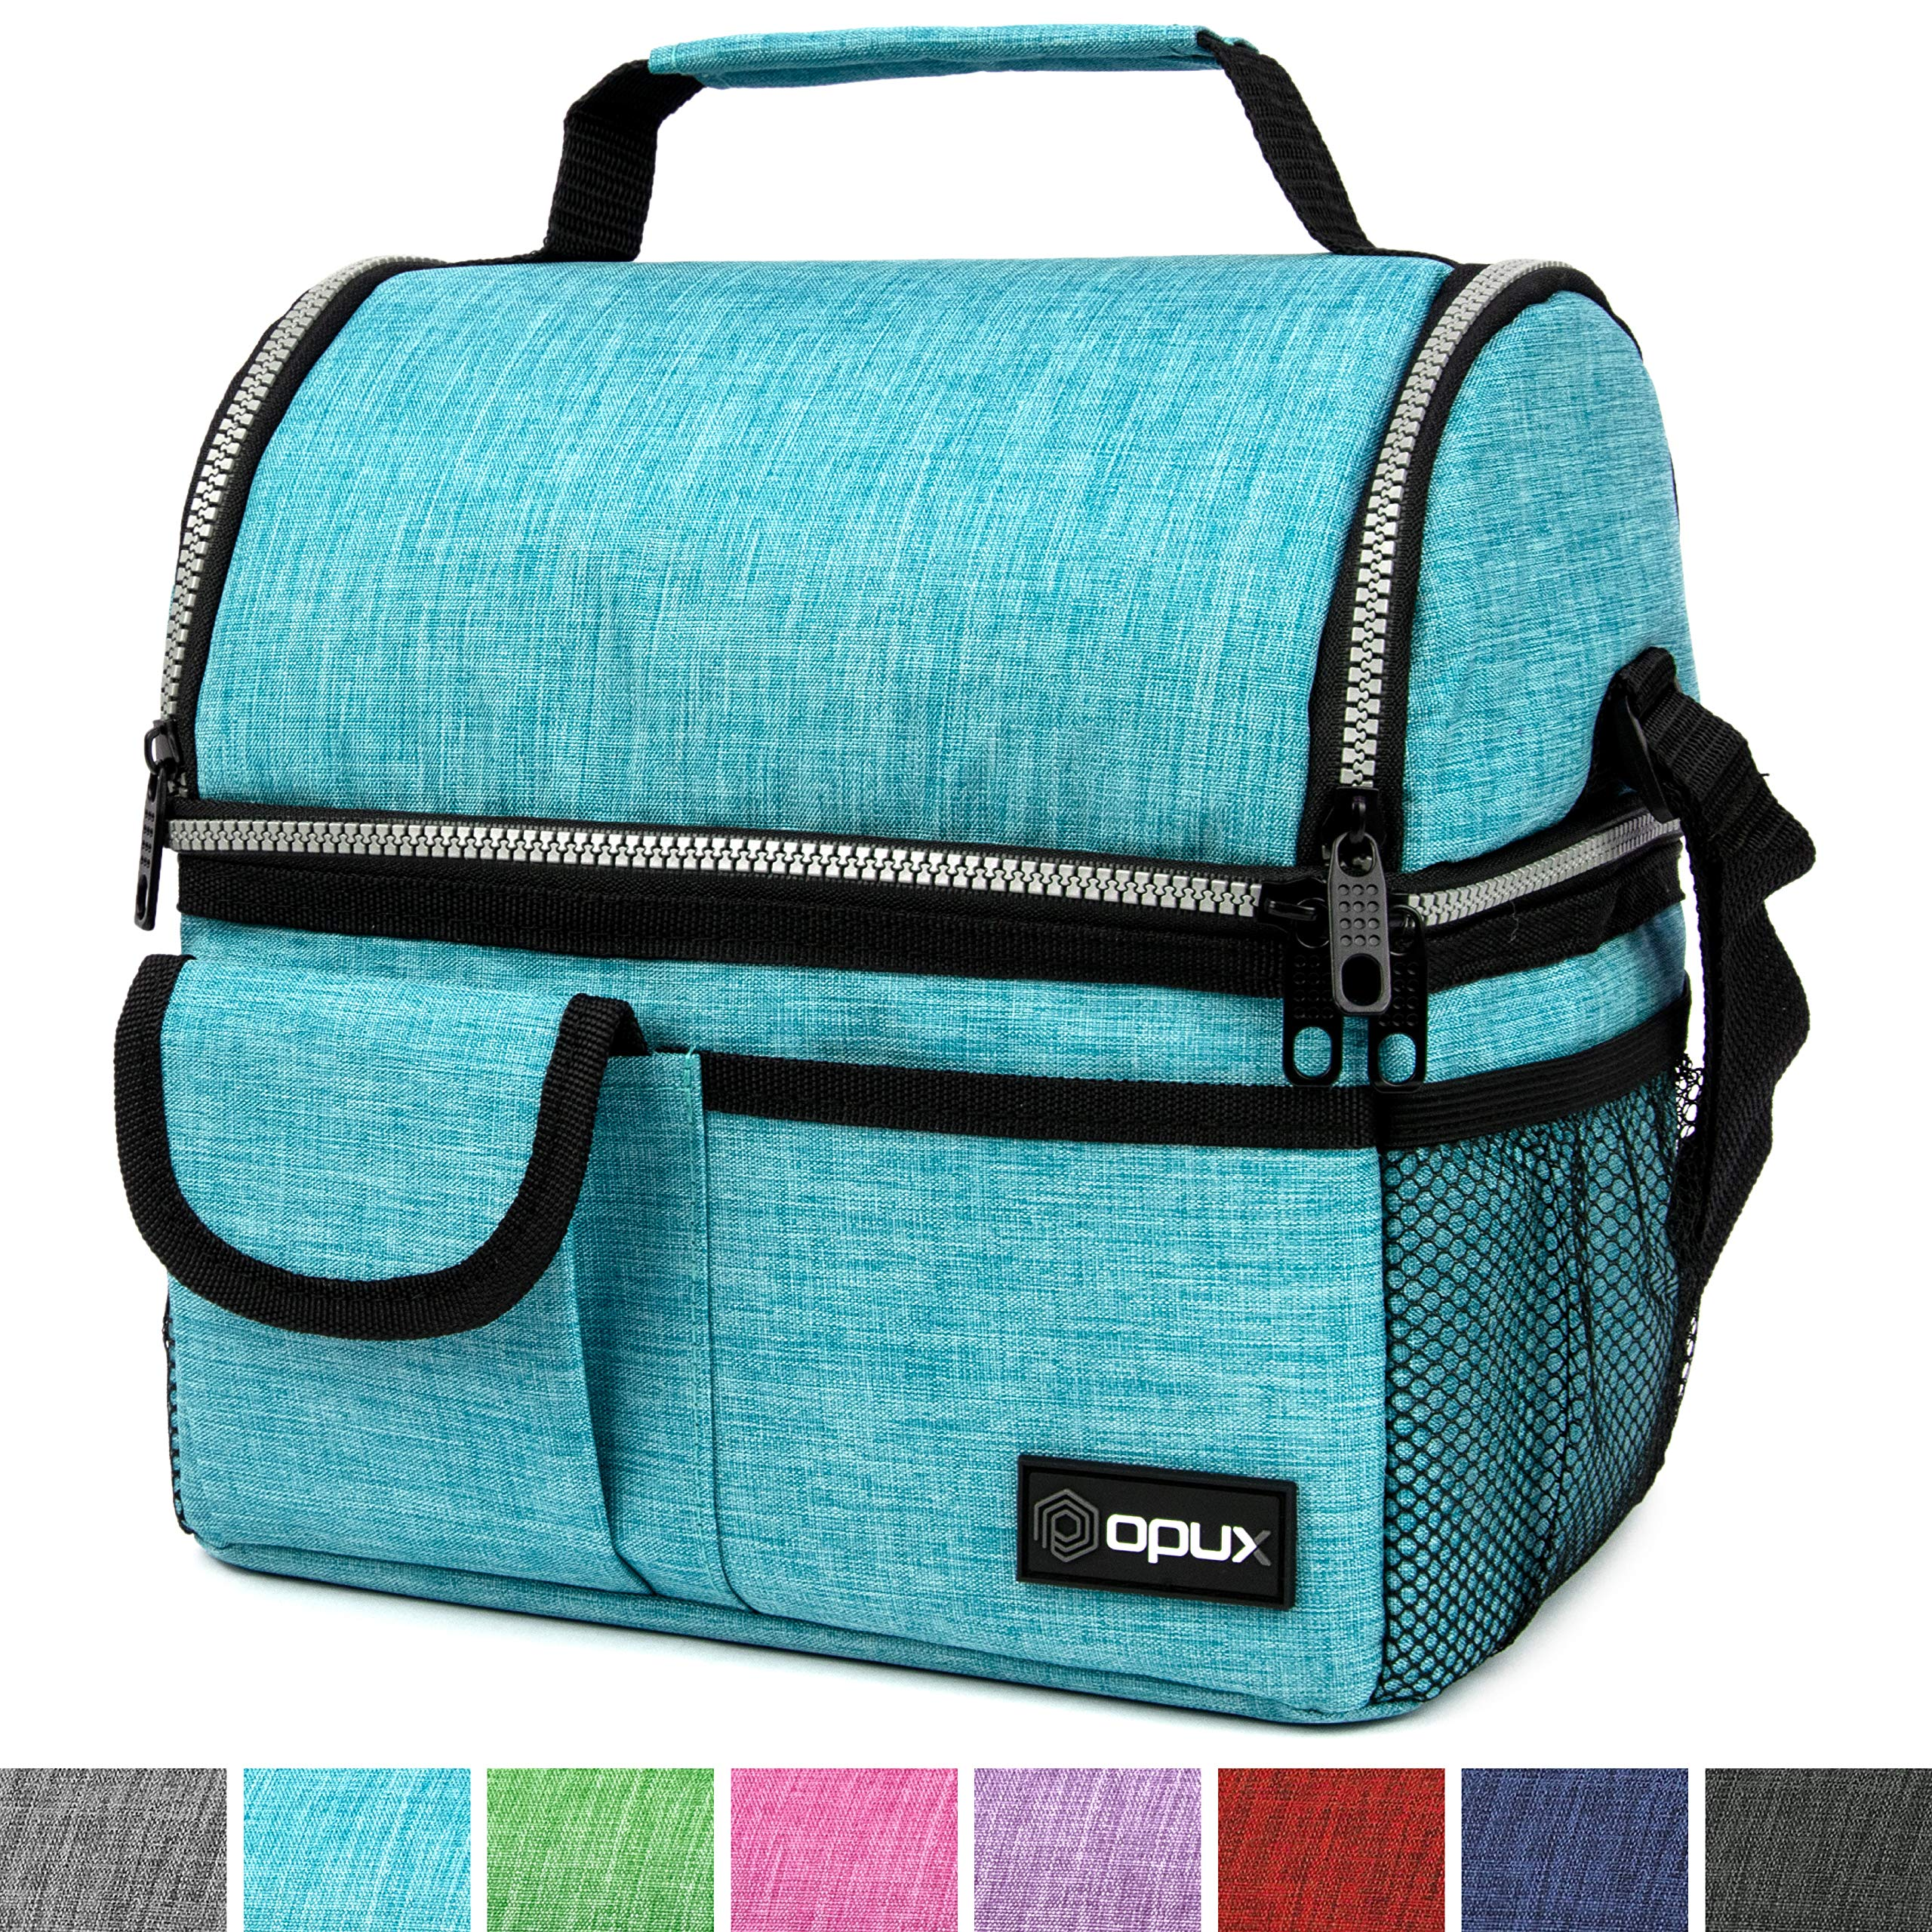 OPUX Deluxe Thermal Insulated Dual Compartment Lunch Bag for Men, Women | Double Deck Reusable Lunch Box with Shoulder Strap, Soft Leakproof Liner | Large School Lunch Tote for Boys, Girls (Turquoise)